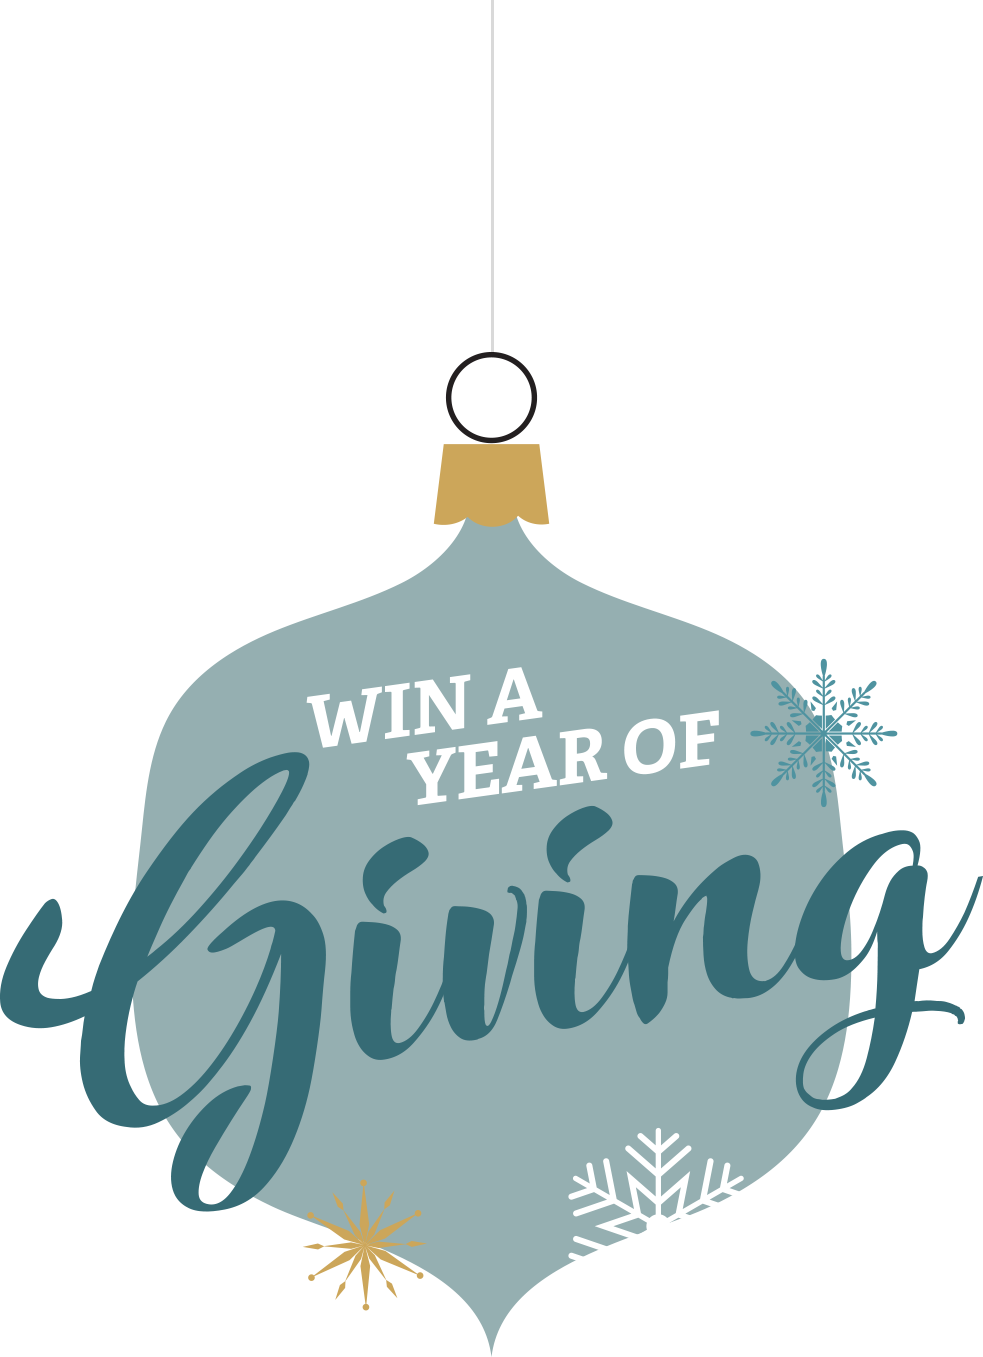 Win a year of giving